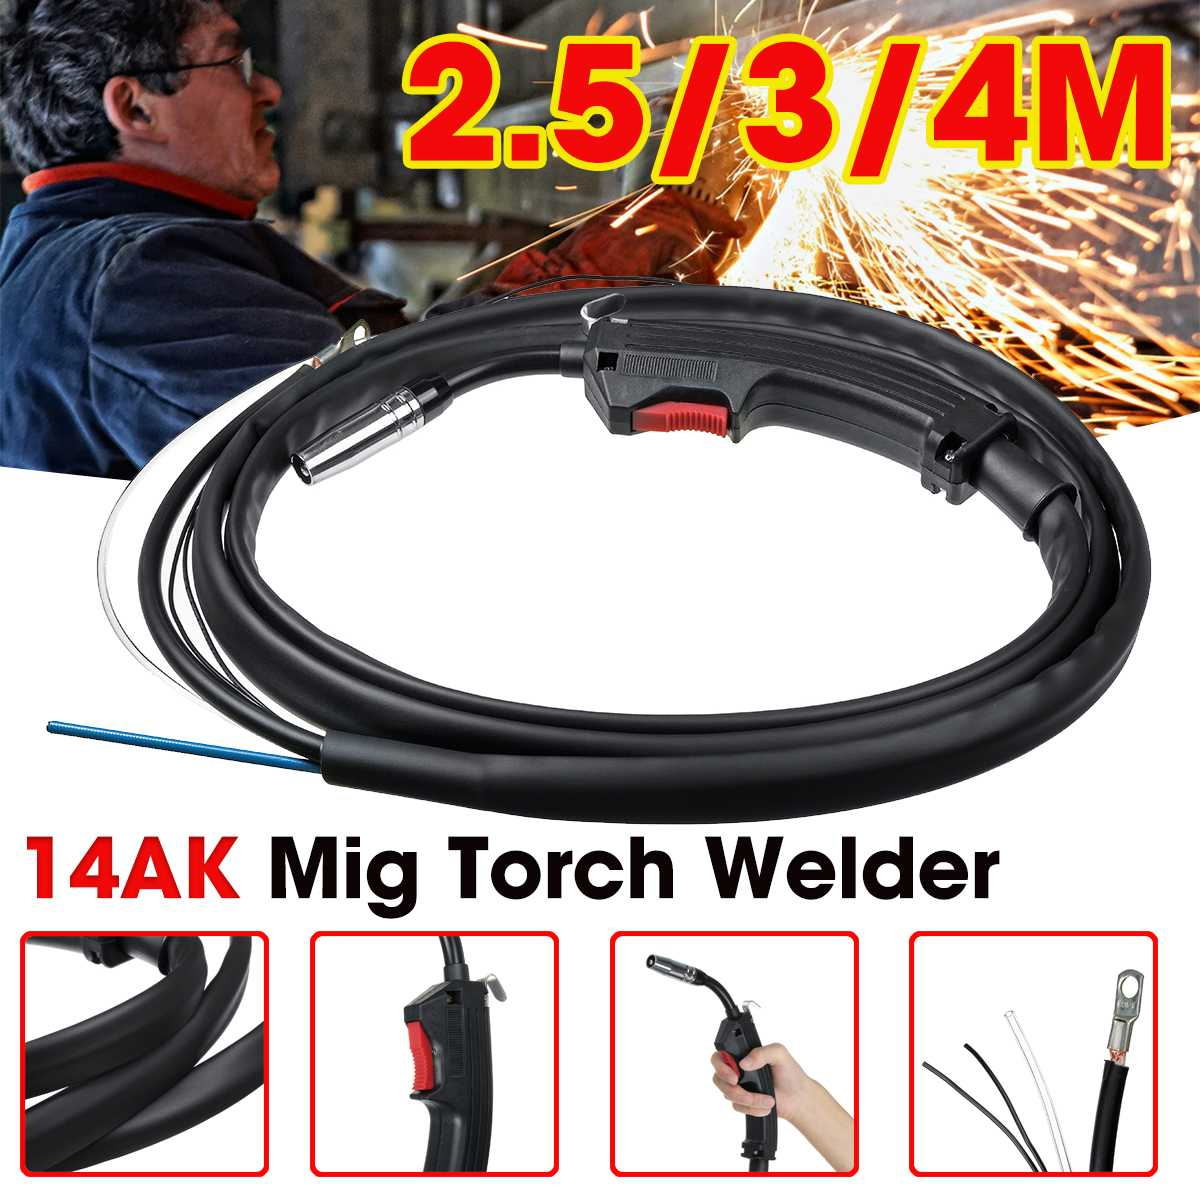 14AK Gas Electric Welding Guns Torch Electric Welder Complete Replacement Spare Part for MIG MAG Welding Machine